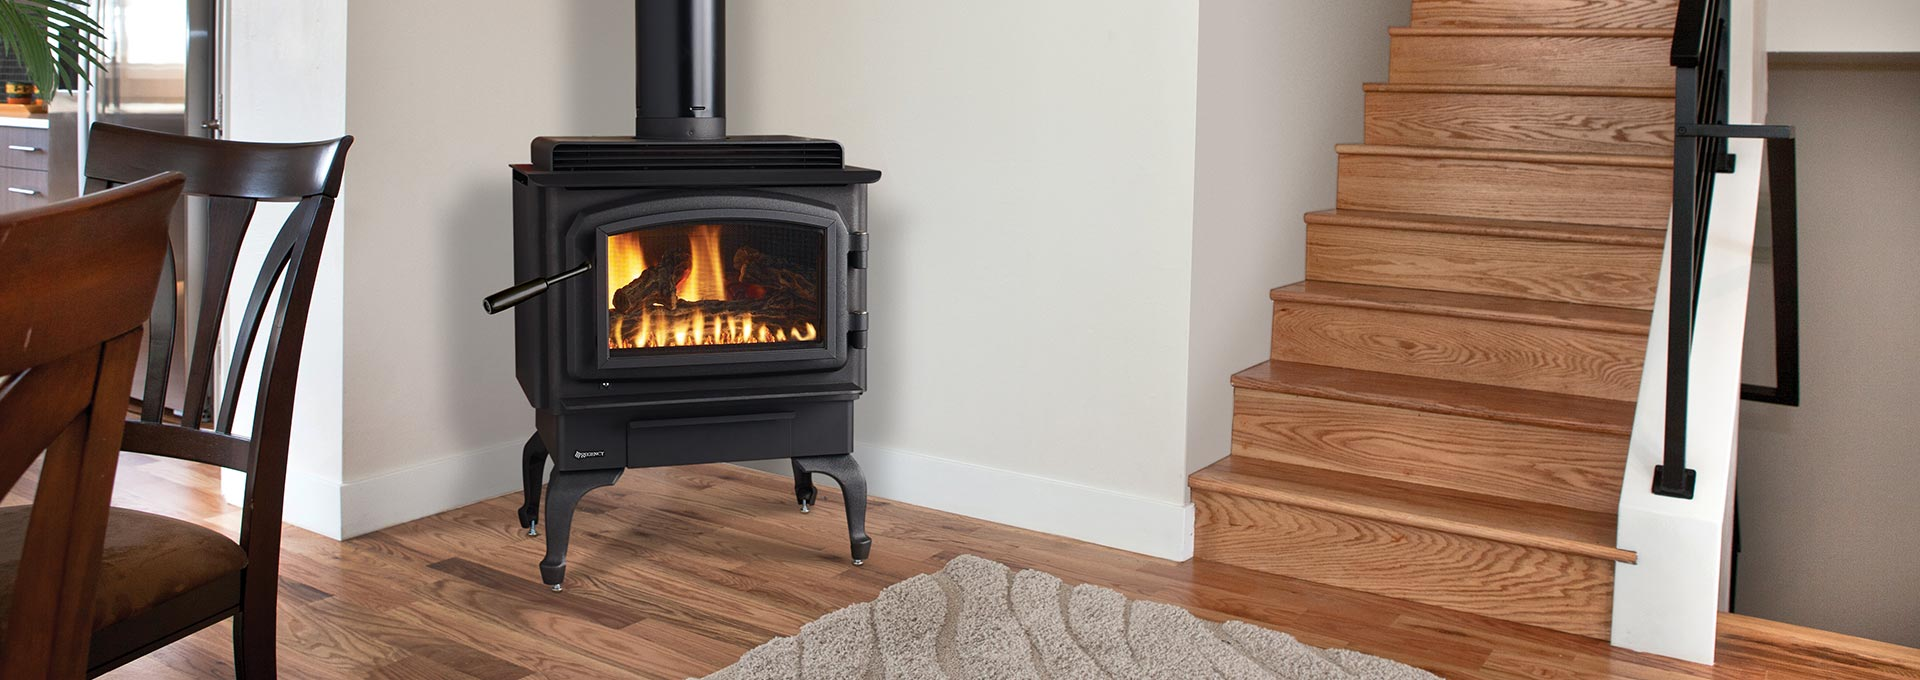 Contura rc500e freestanding gas stove shown with black cast iron legs and black door